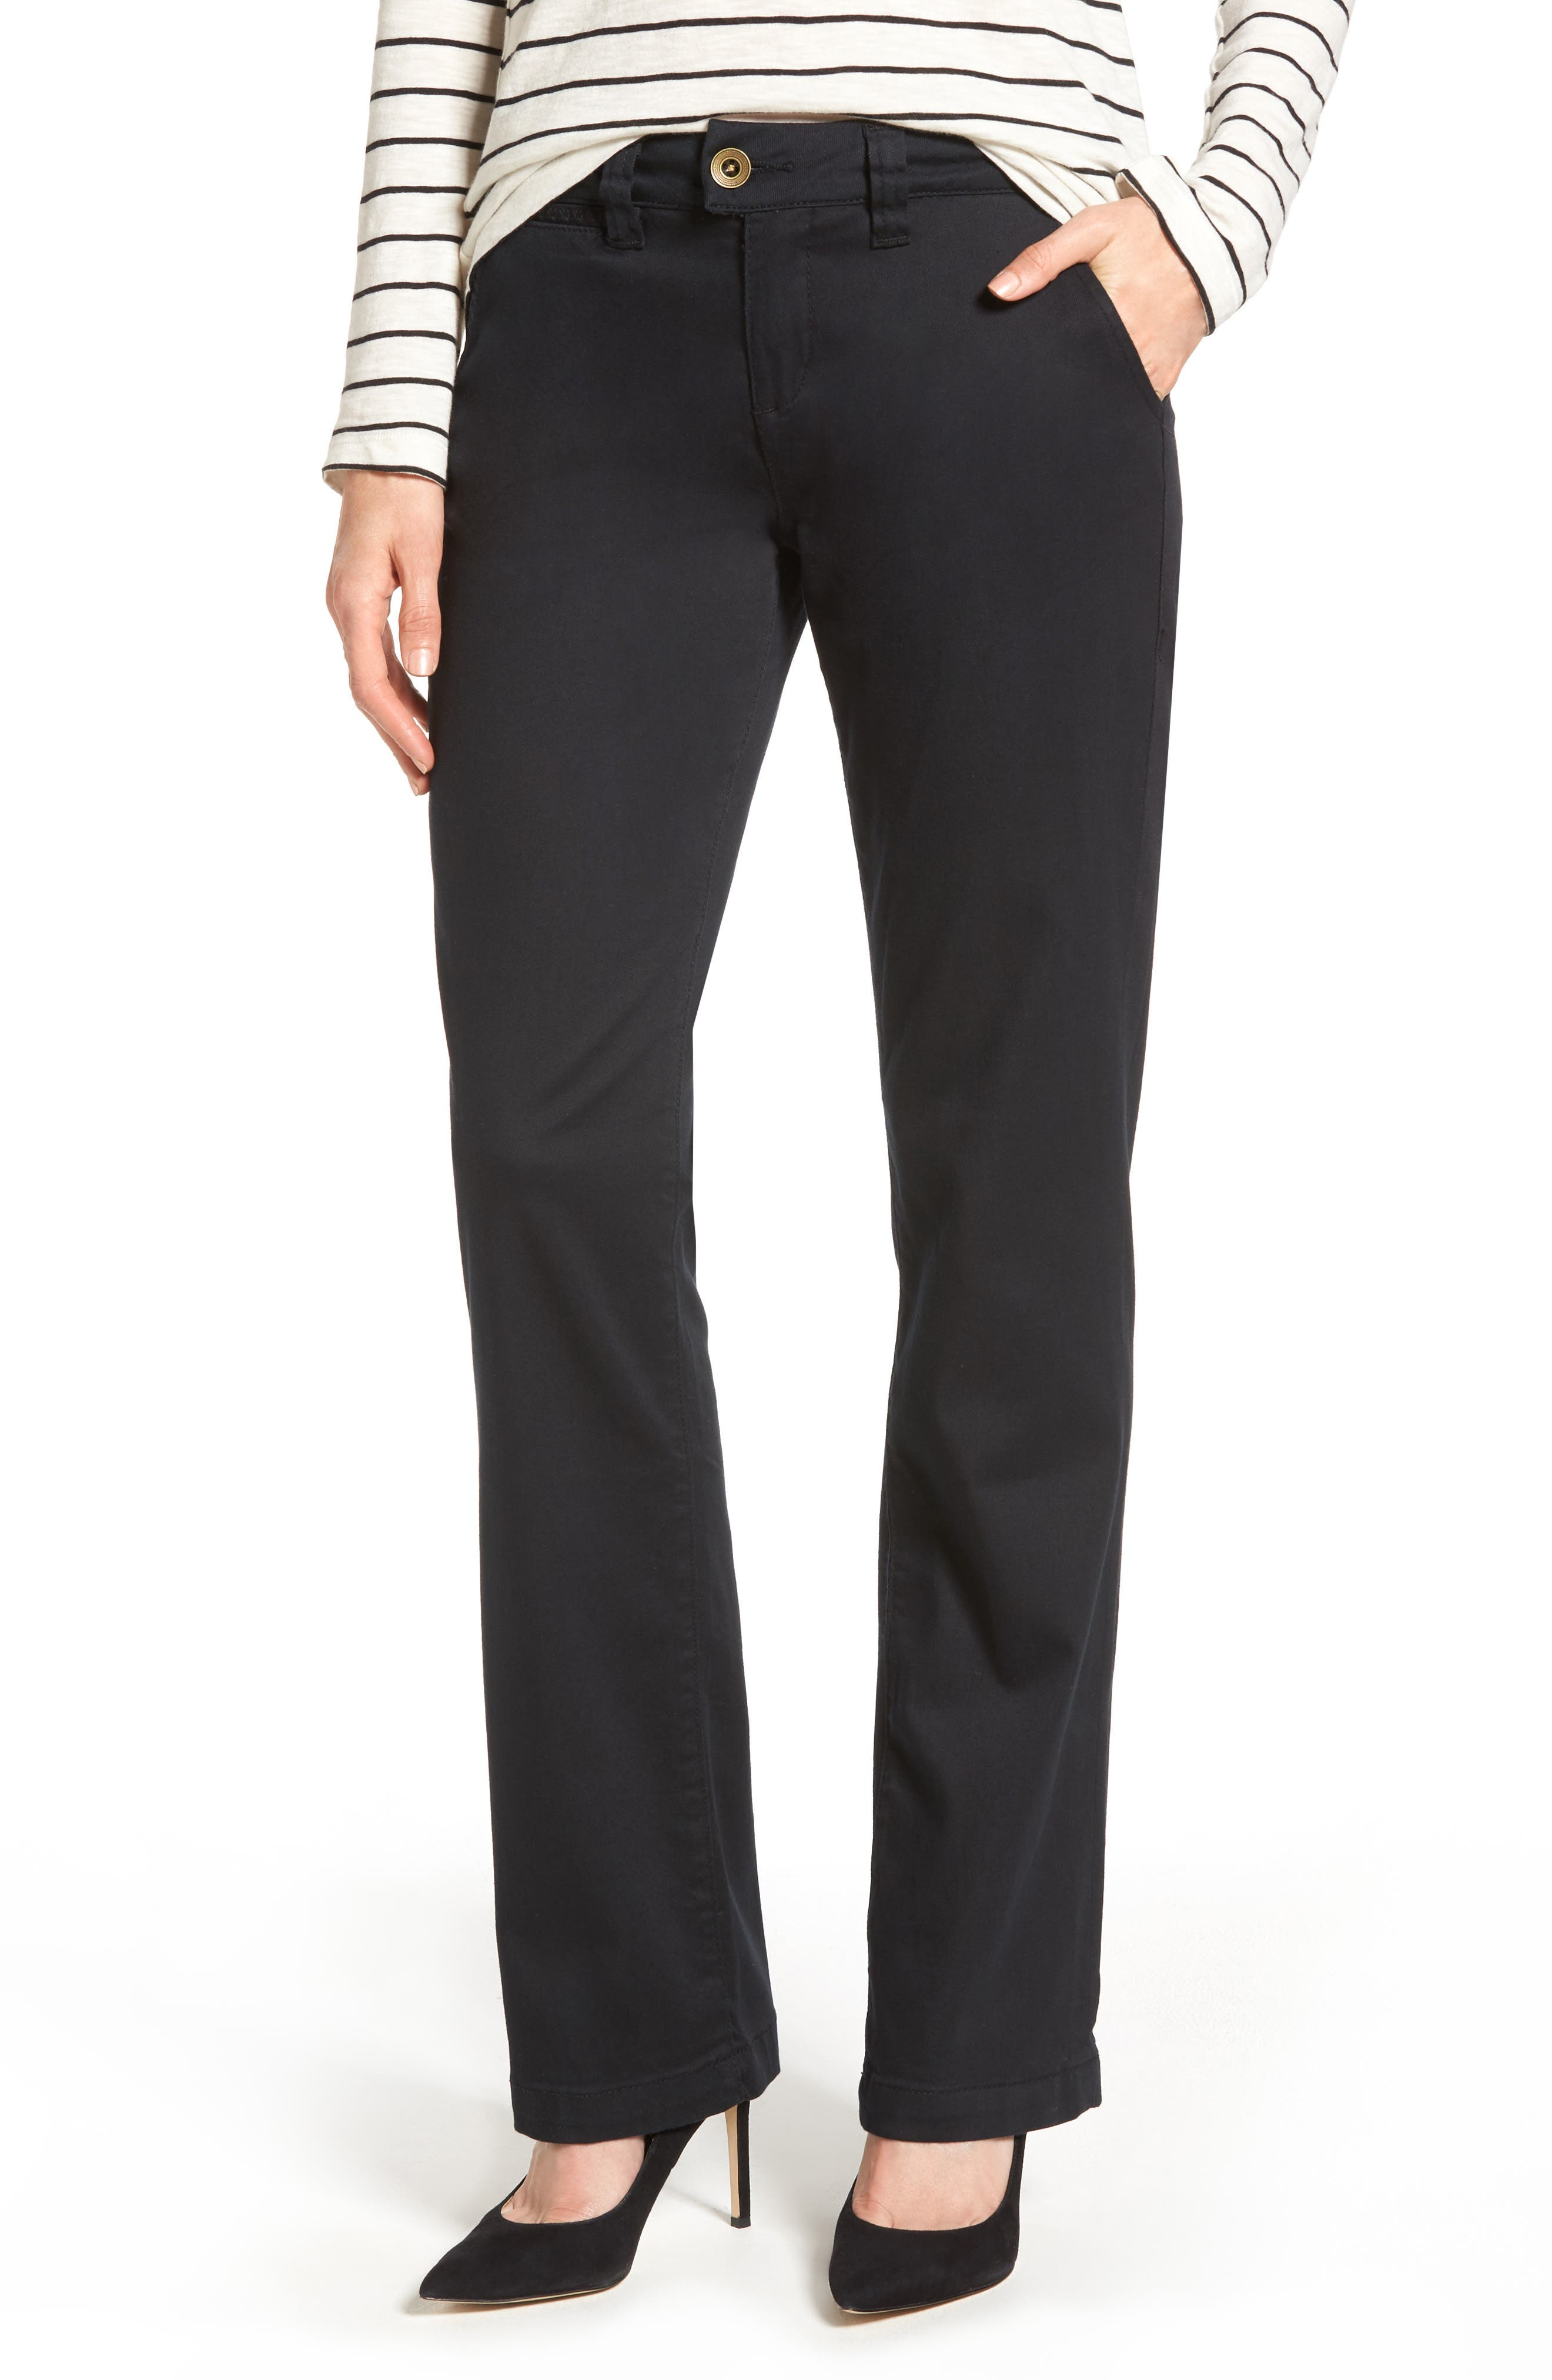 Women's Jag Jeans Standard Stretch Twill Trousers